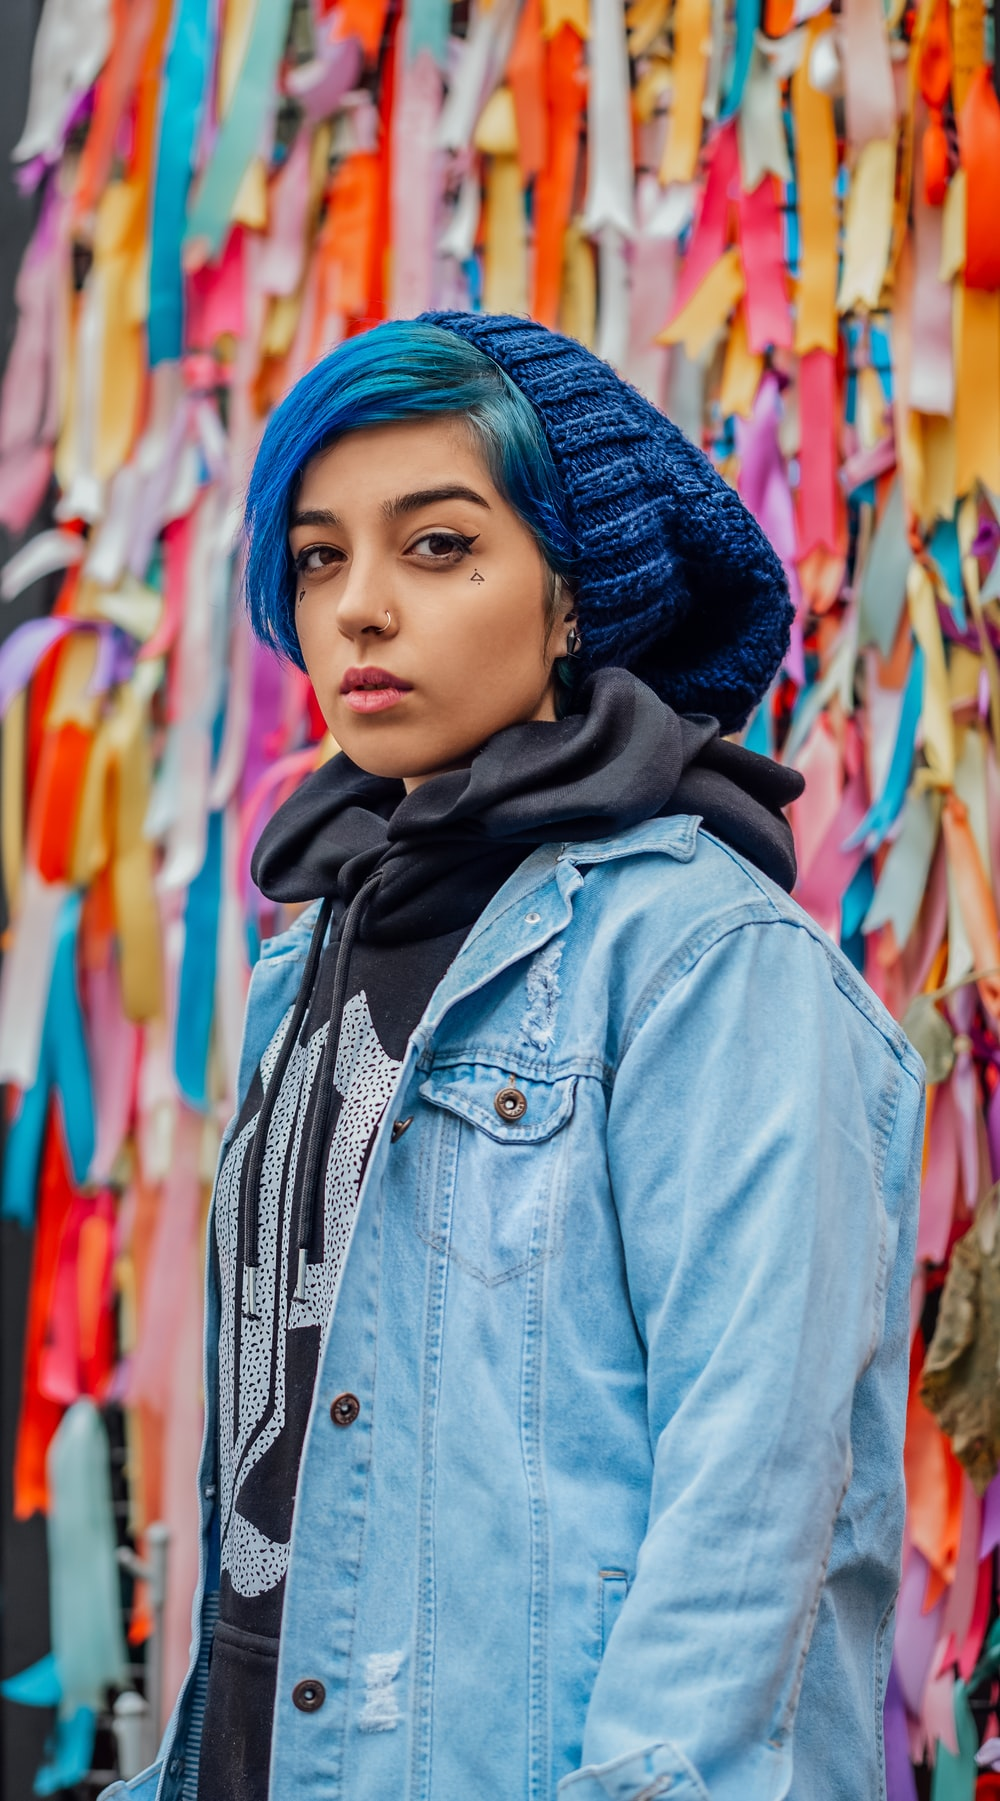 woman with blue hair wearing blue denim jacket standing beside wall with bows